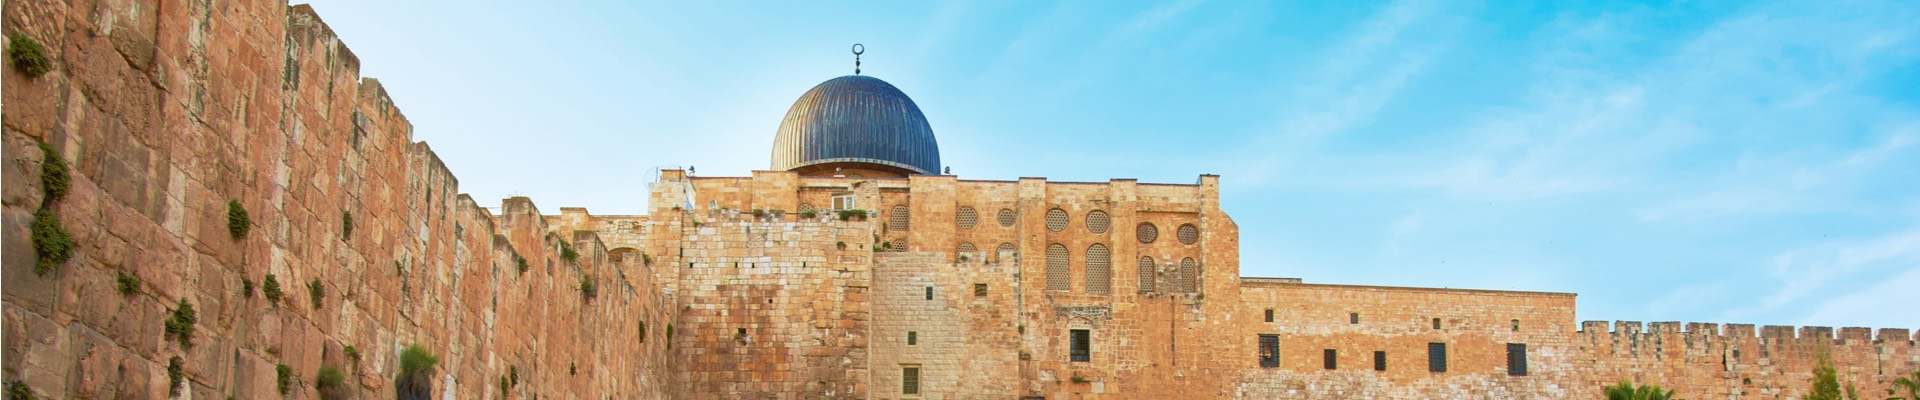 The Best of Israel with Underground Jerusalem 10 Day Tour